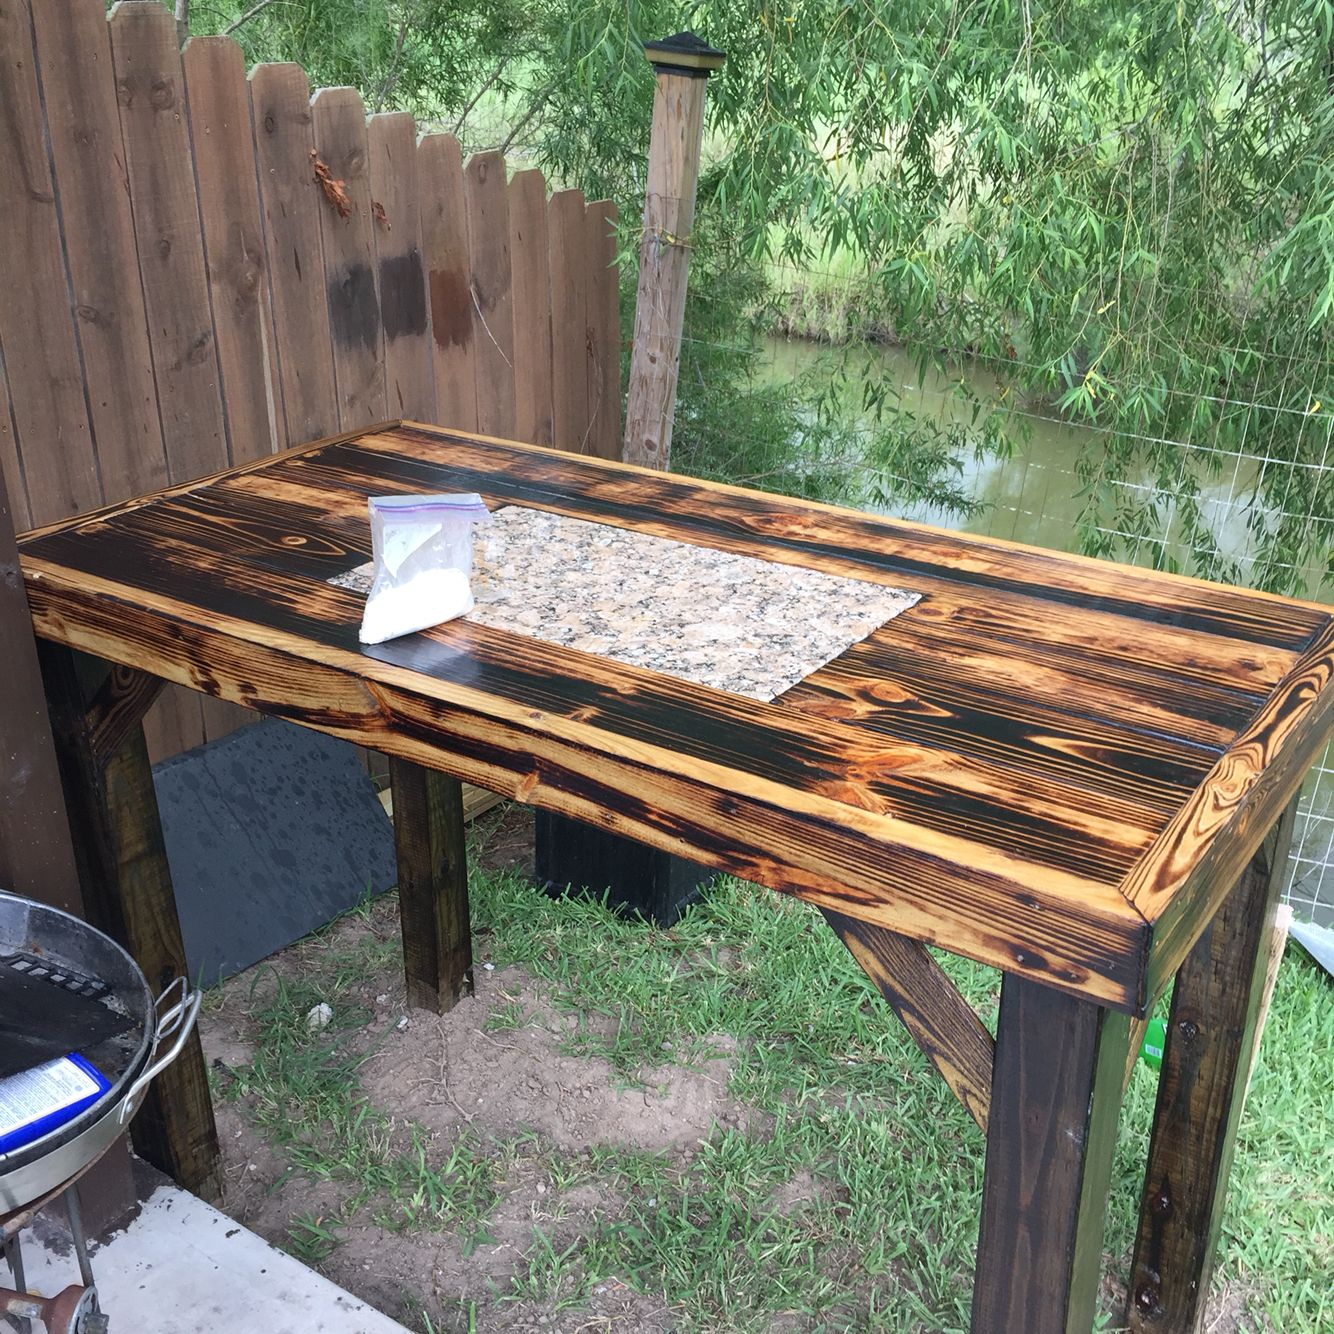 Custom Made Prep Table. This Is A Custom Made Prep Table That Is Made With  Treated Wood. It Is Sunk Into The Ground On Pressure Treated Wood Fence  Post For ...